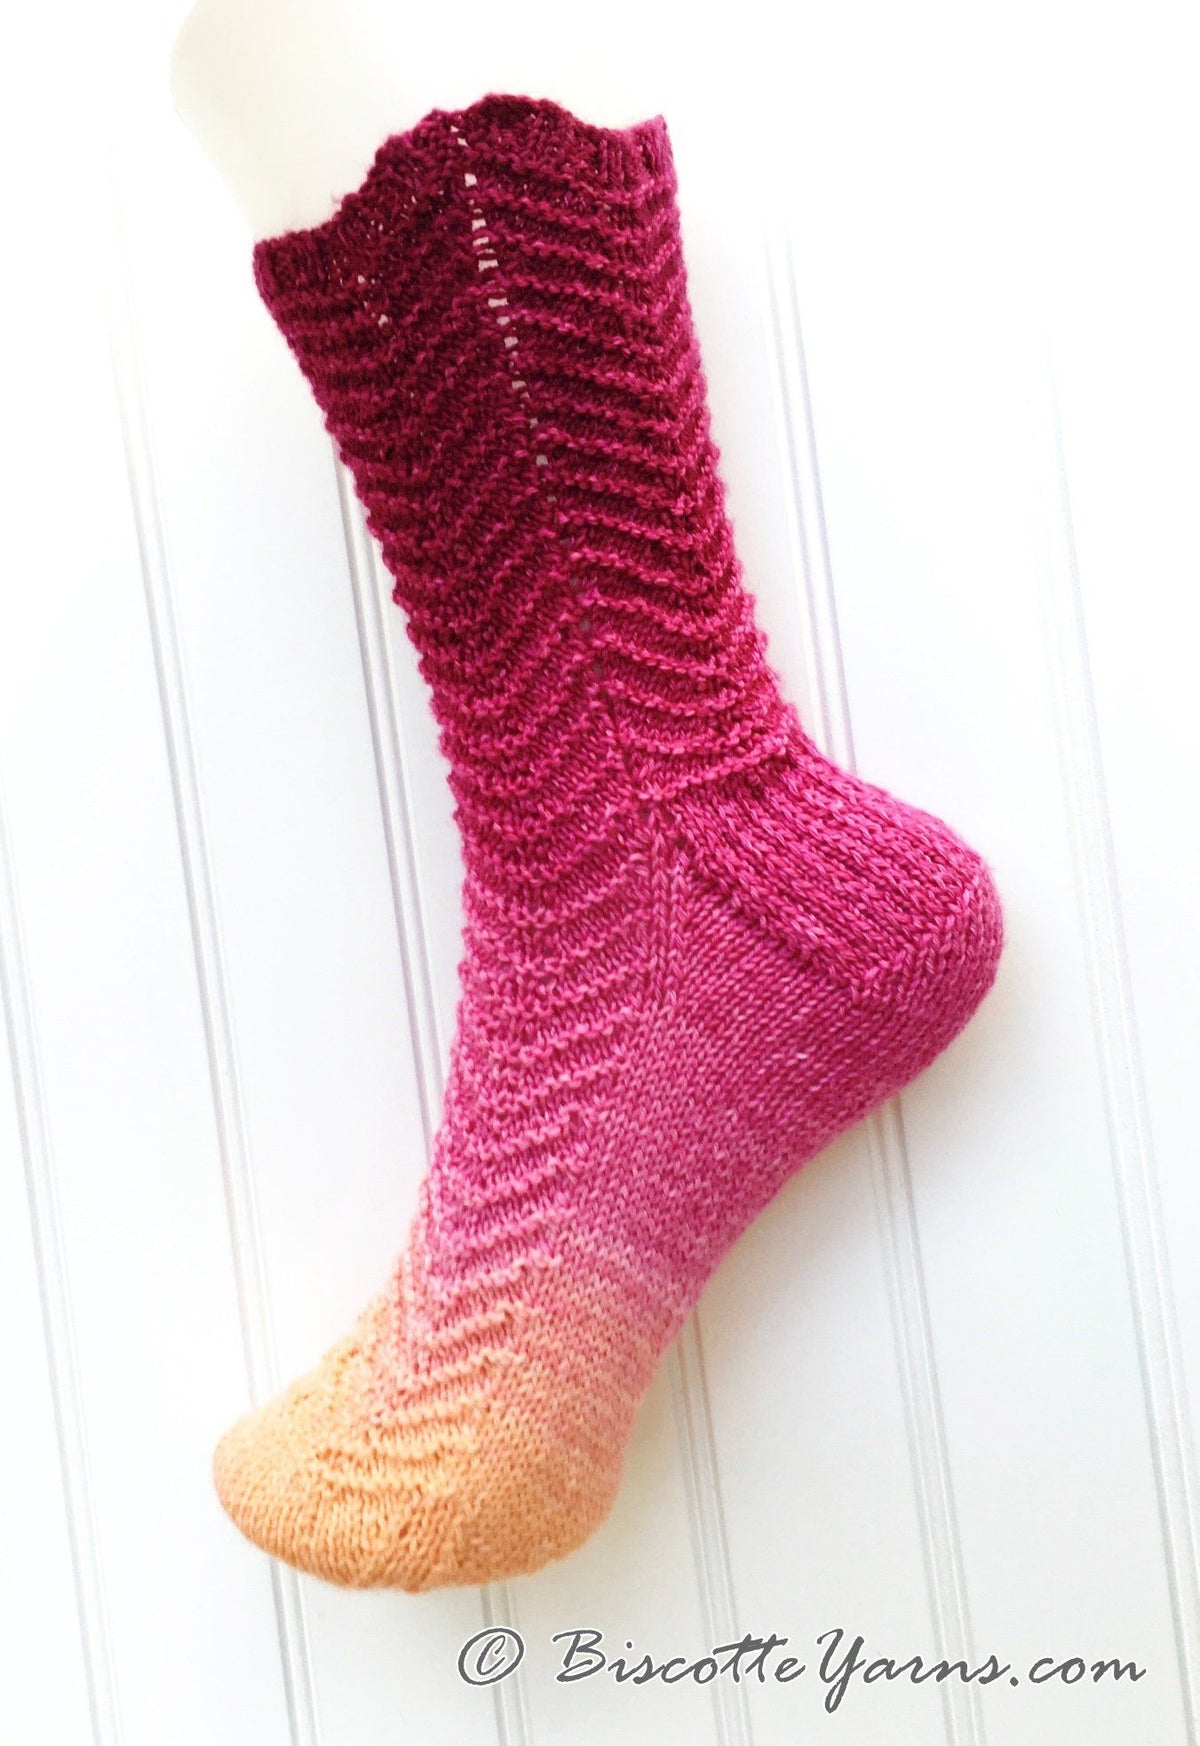 Free Socks Pattern - Metamorph Socks